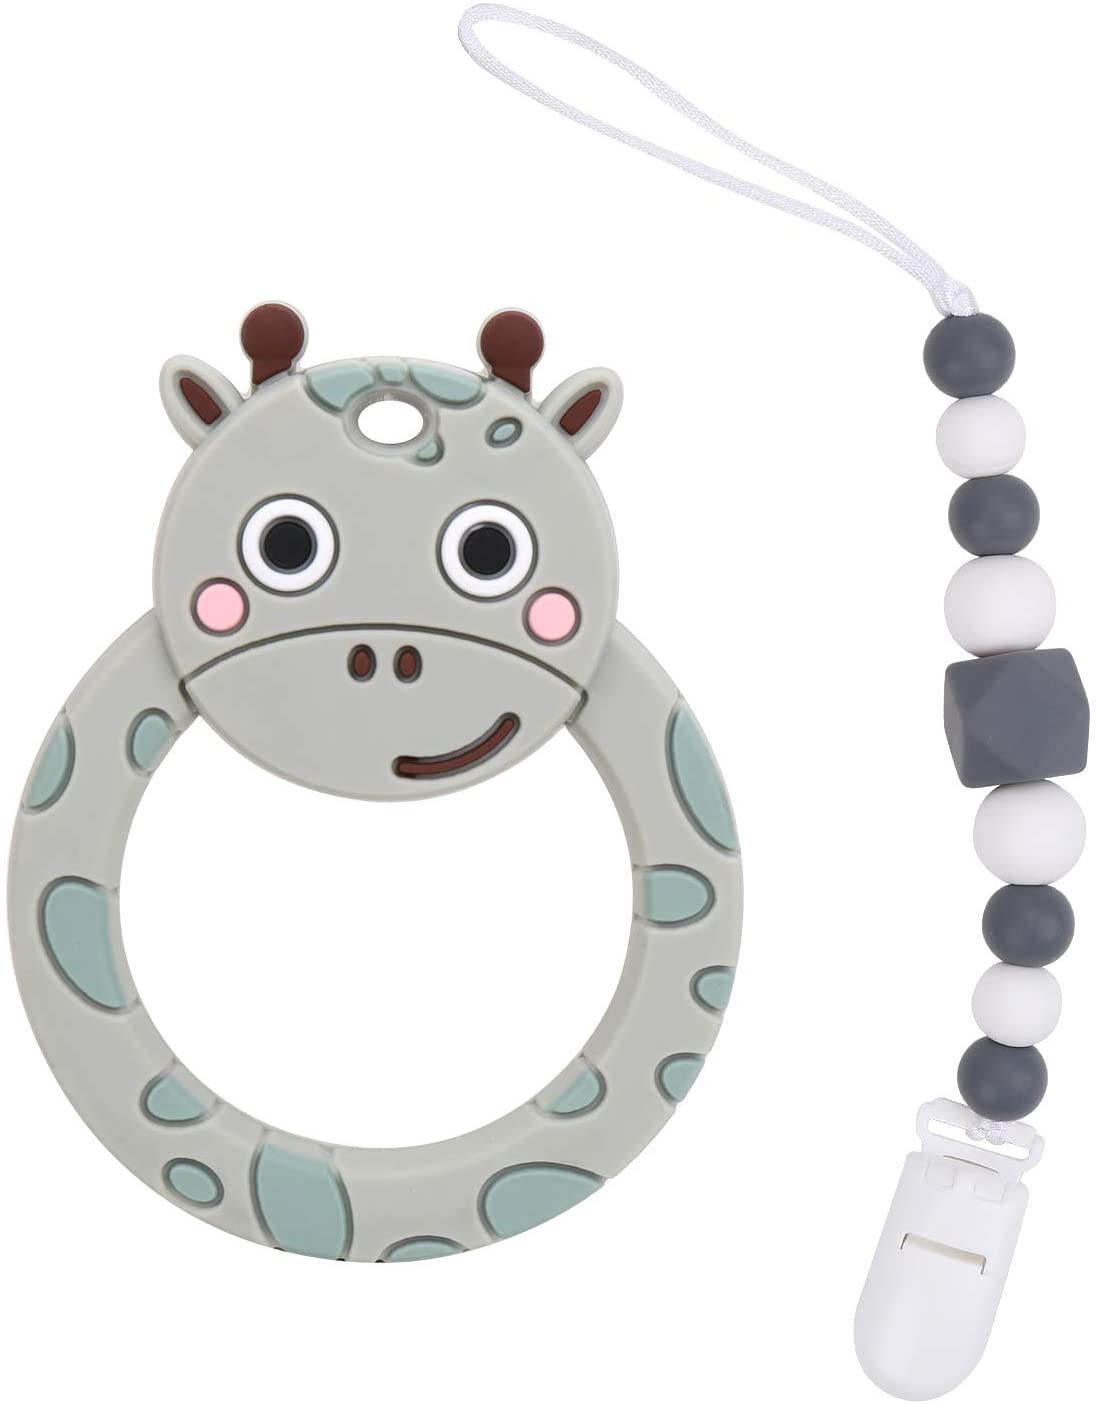 Flantor Baby Teether Silicone Teether Toy with Pacifier Clip Holder Set for Newborn Babies,Food Grade BPA Free Silicone Teether, for Boy and Girl (Giraffe-Grey)